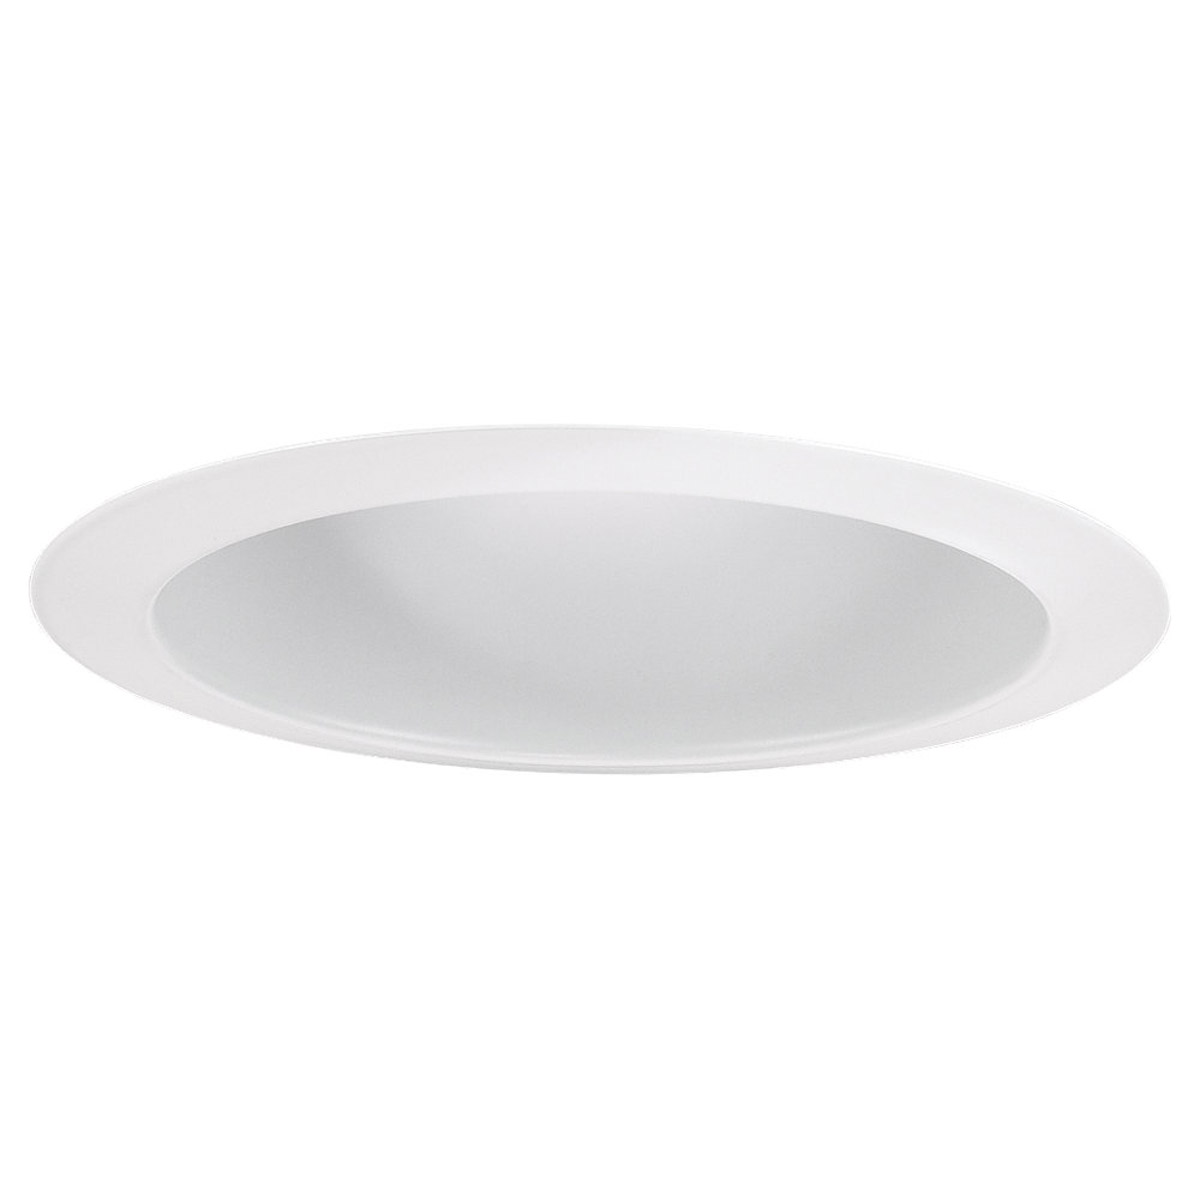 Sea Gull Lighting Signature Recessed Trim Only in White 11132AT-14